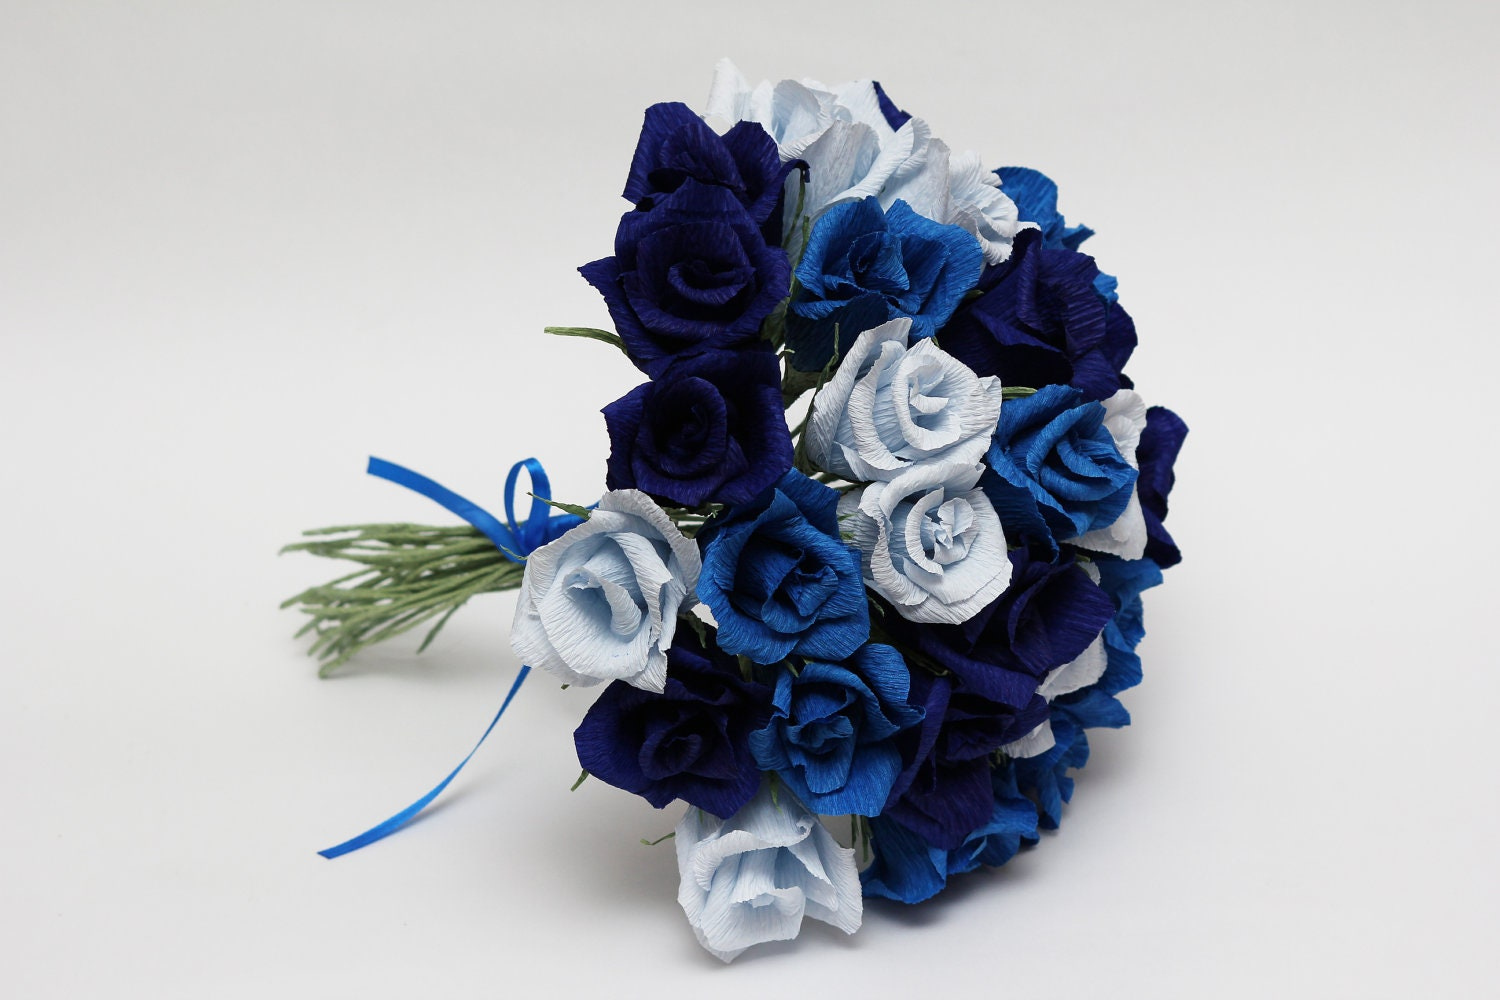 dark blue flowers for wedding bouquets 2 bridesmaid bouquet paper flowers wedding flowers wedding 3308